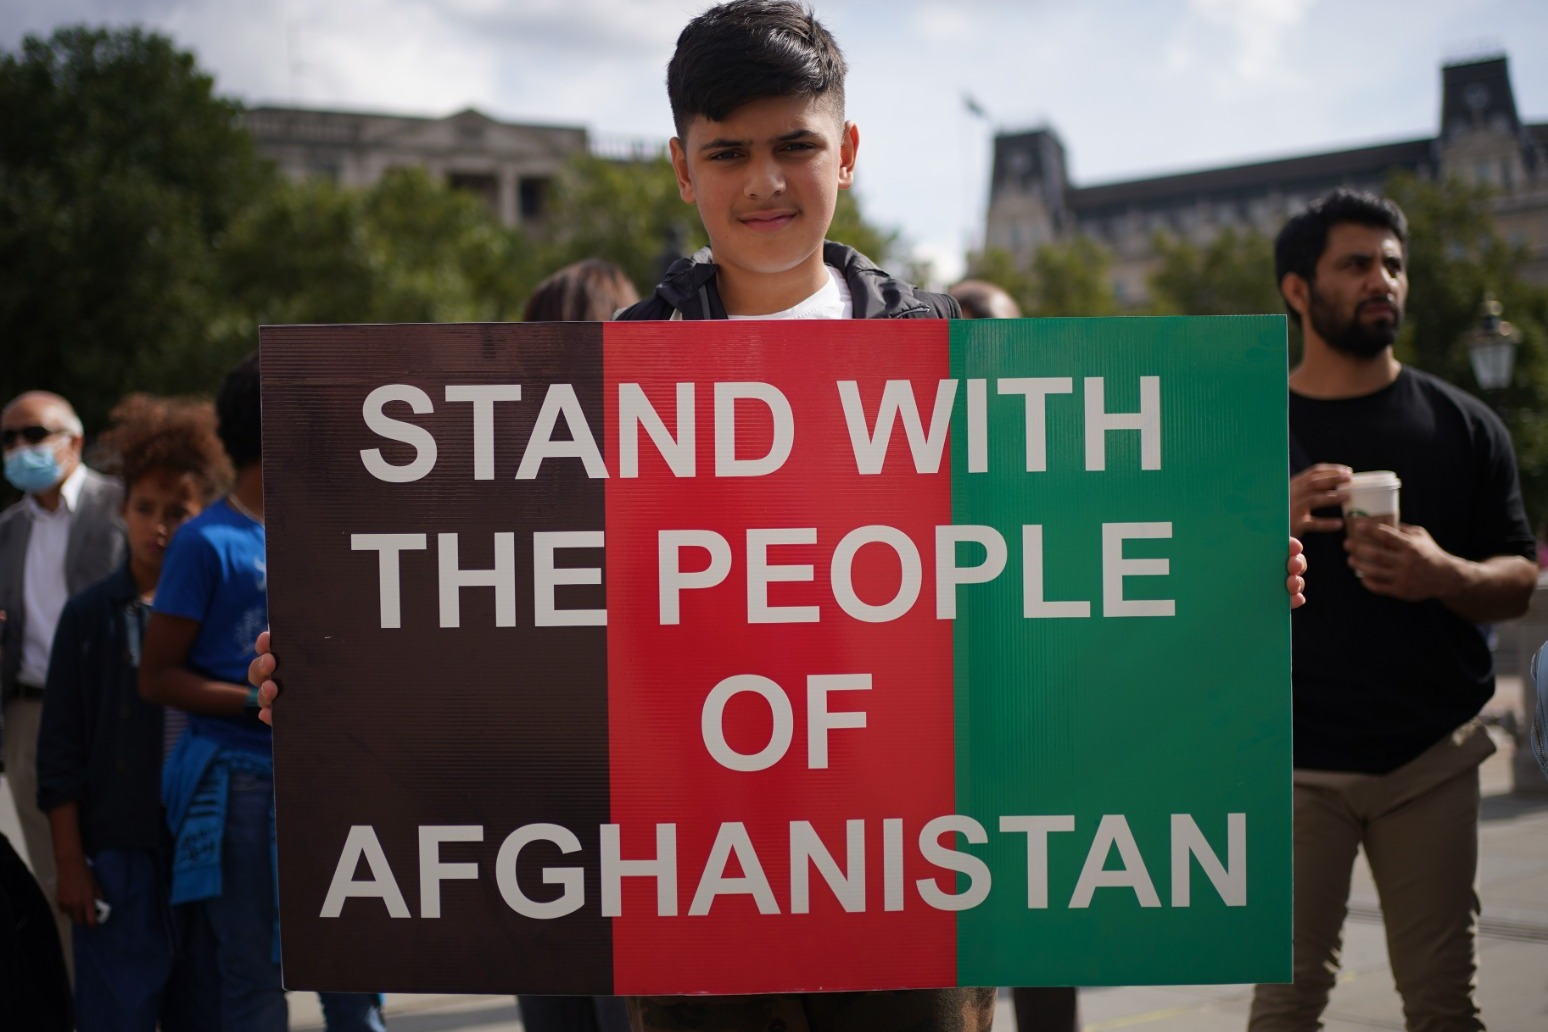 Protesters urge world not to ignore plight of Afghans.